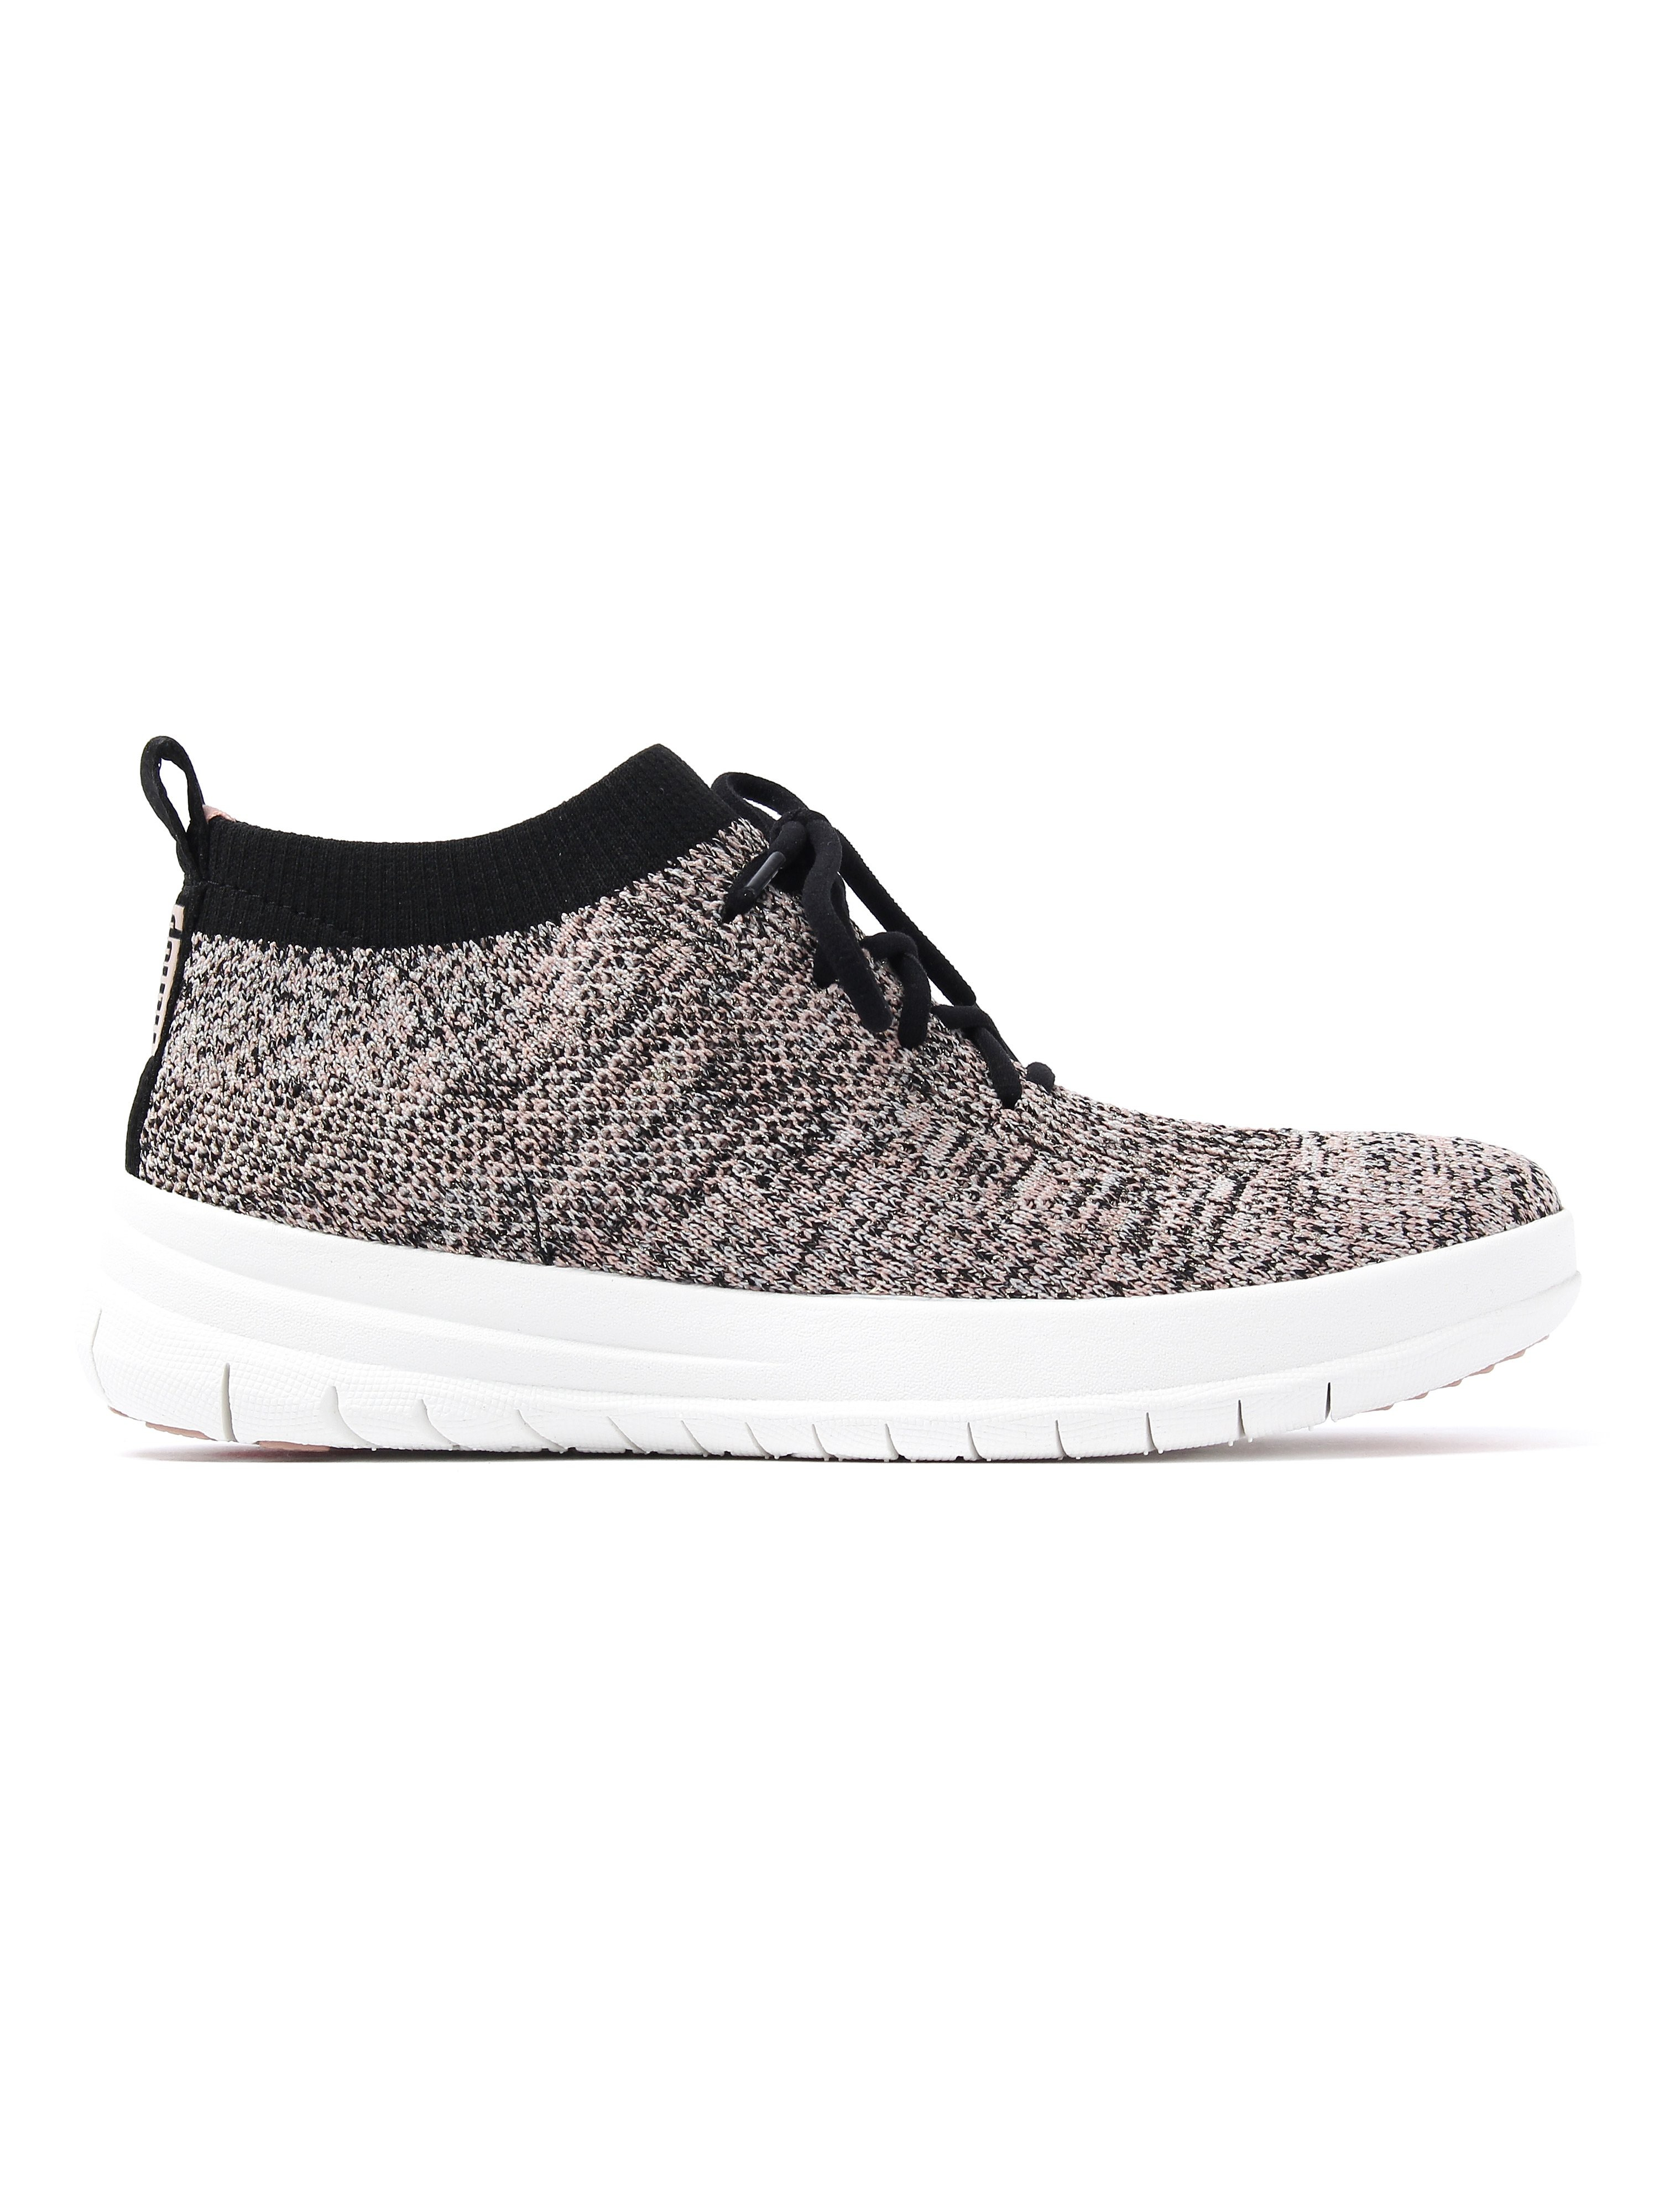 FitFlop Women's Uberknit Metallic Fleck High Top Trainers - Black & Nude